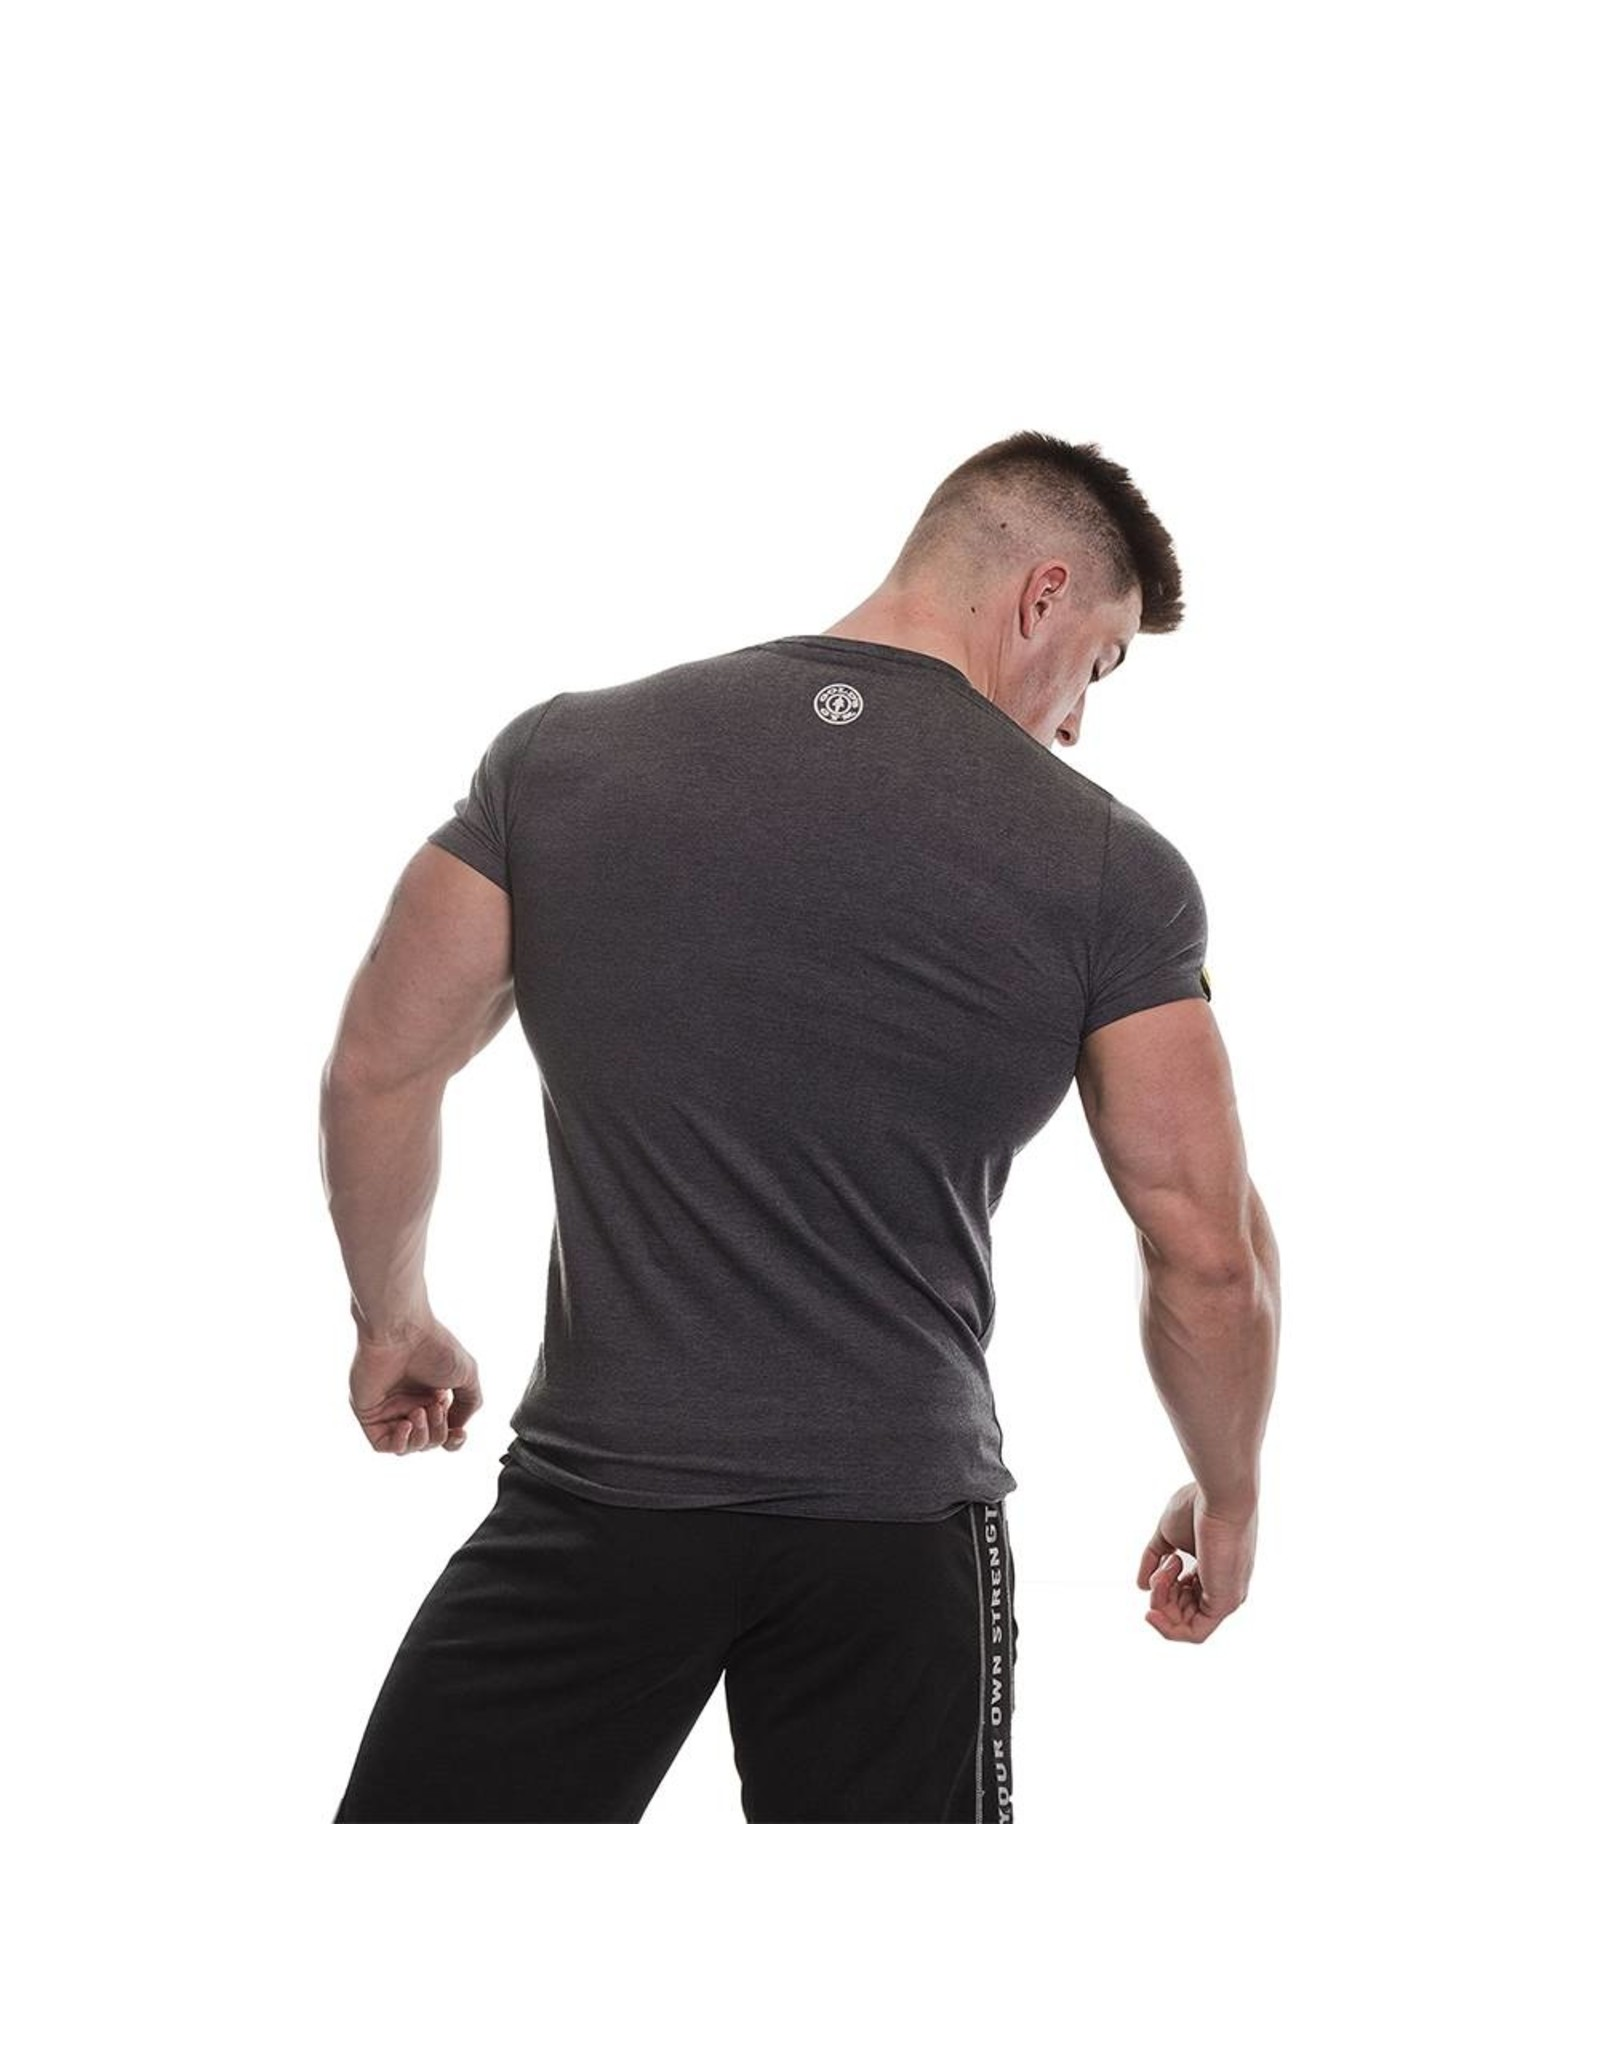 Gold's Gym Vintage Style T-shirt - Charcoal Marl